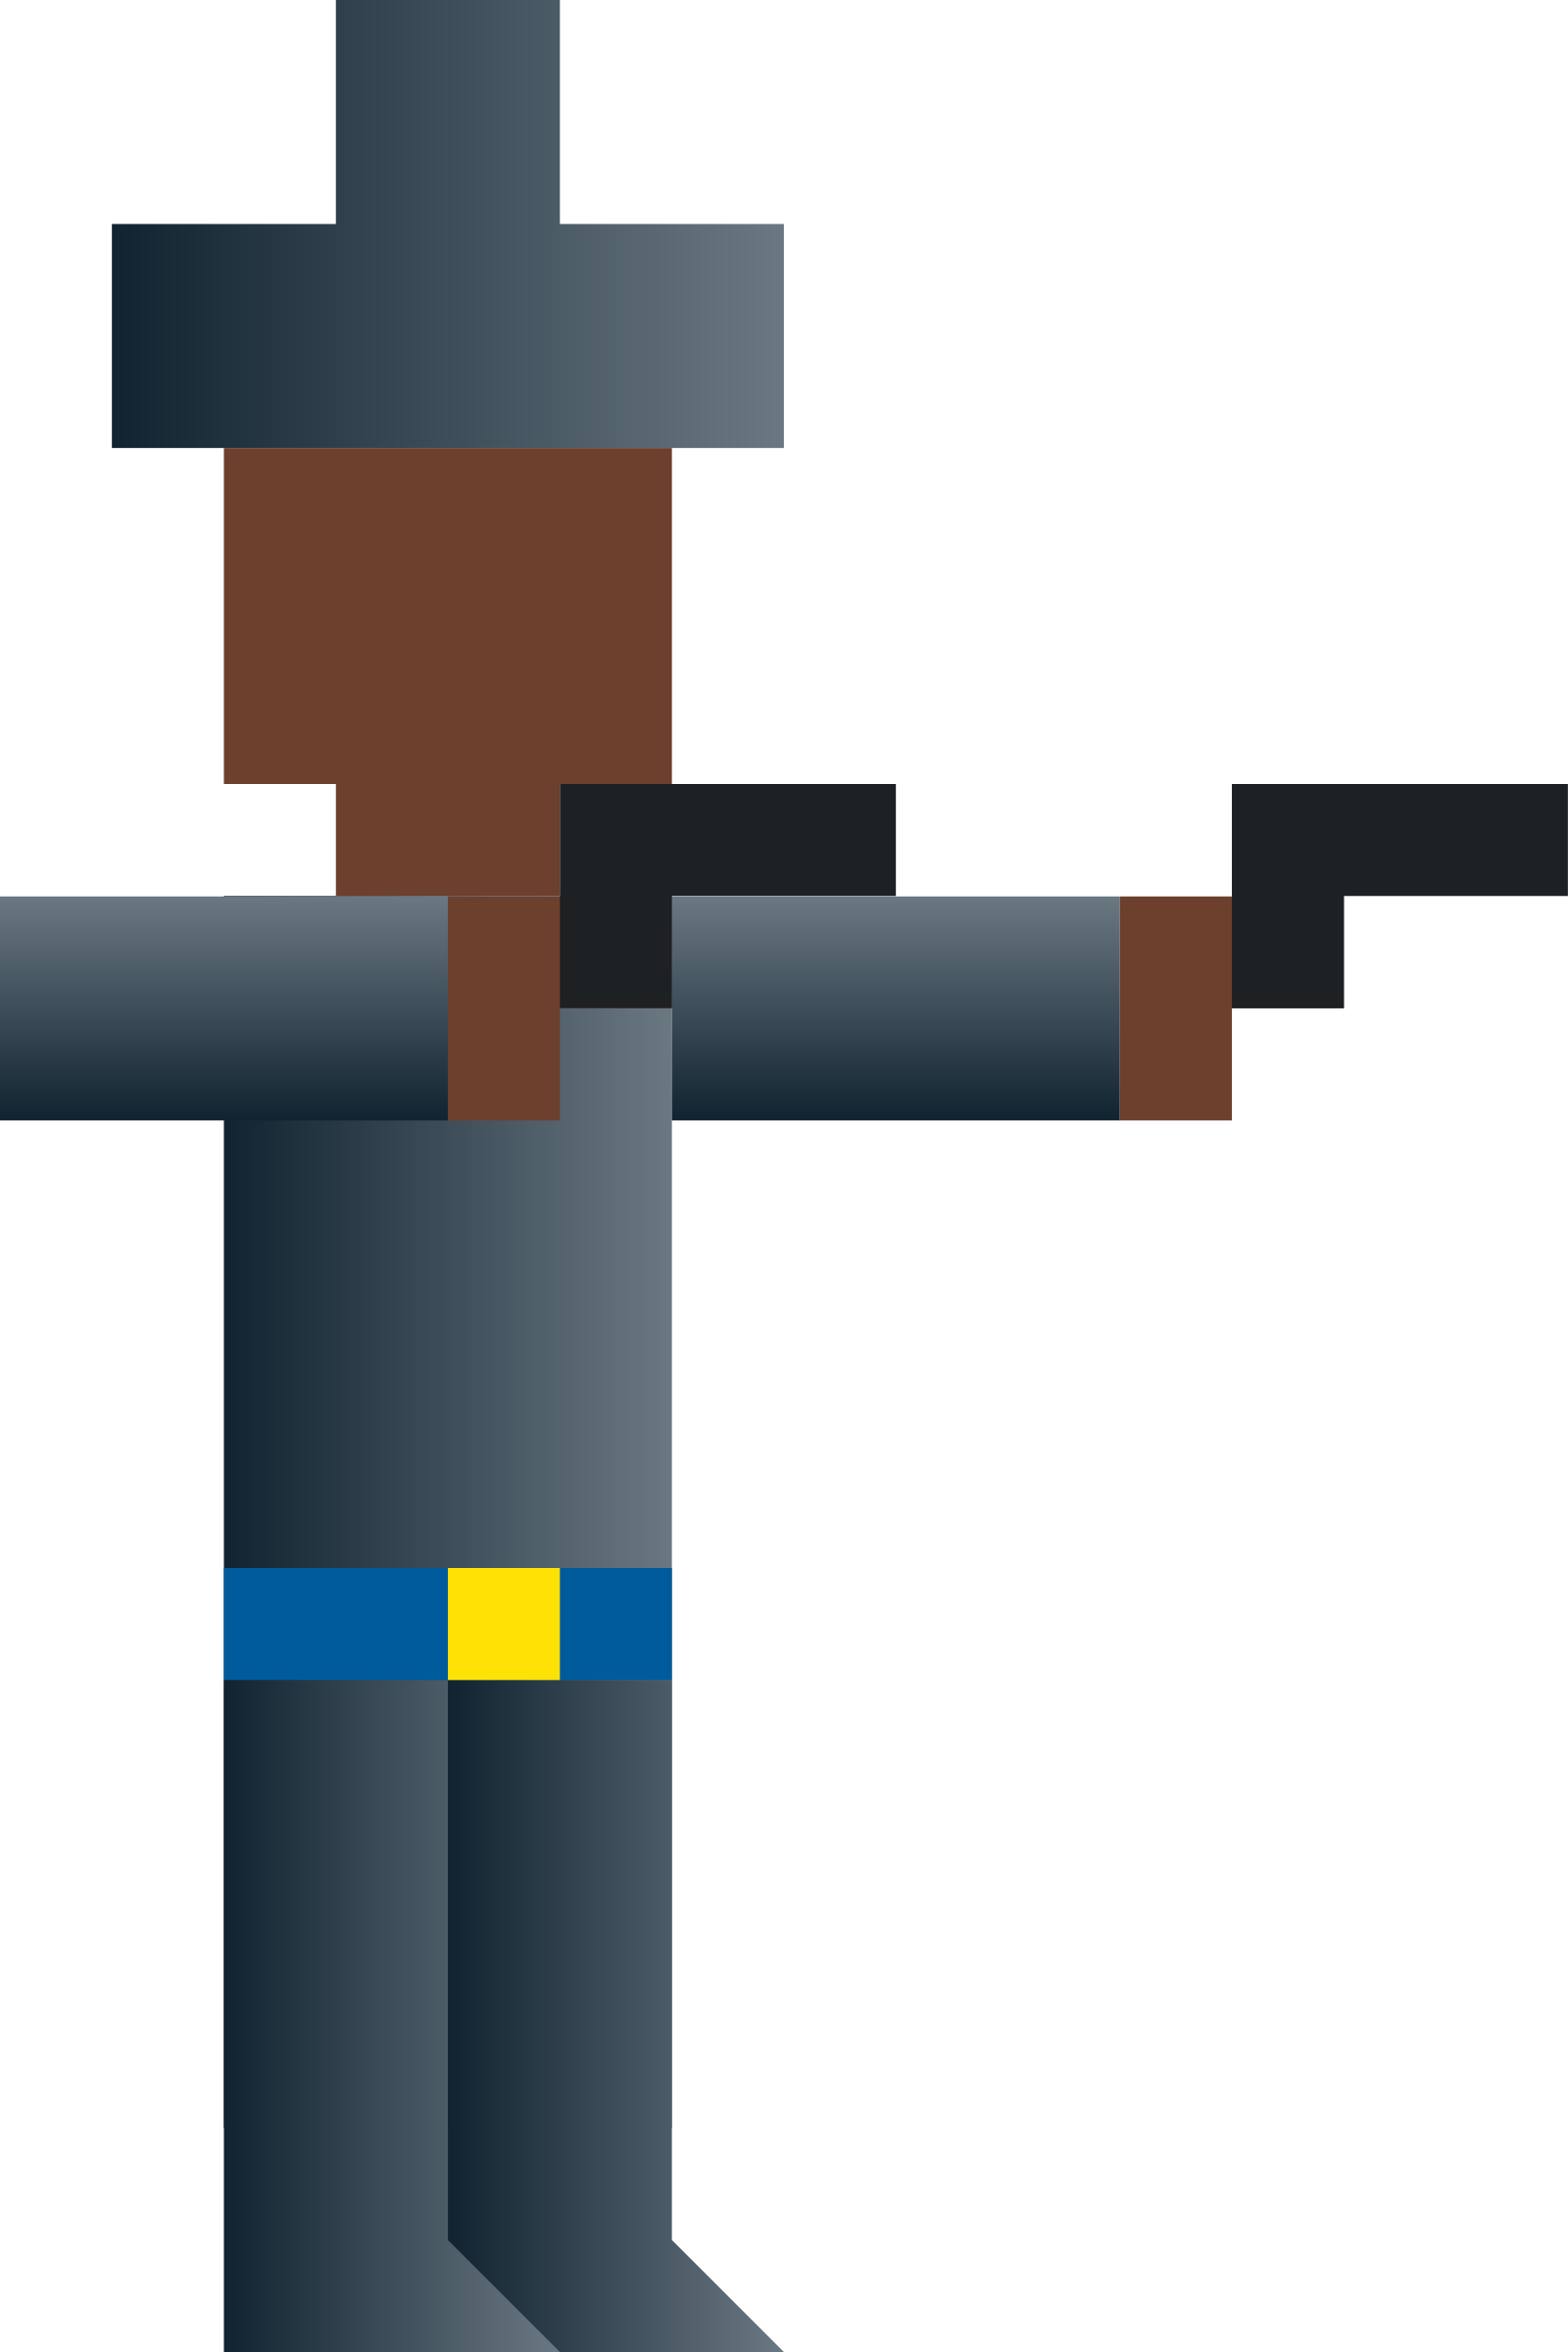 Cowboy Dual-Wielding Guns (Abstract Vector Pixel Art) by qubodup